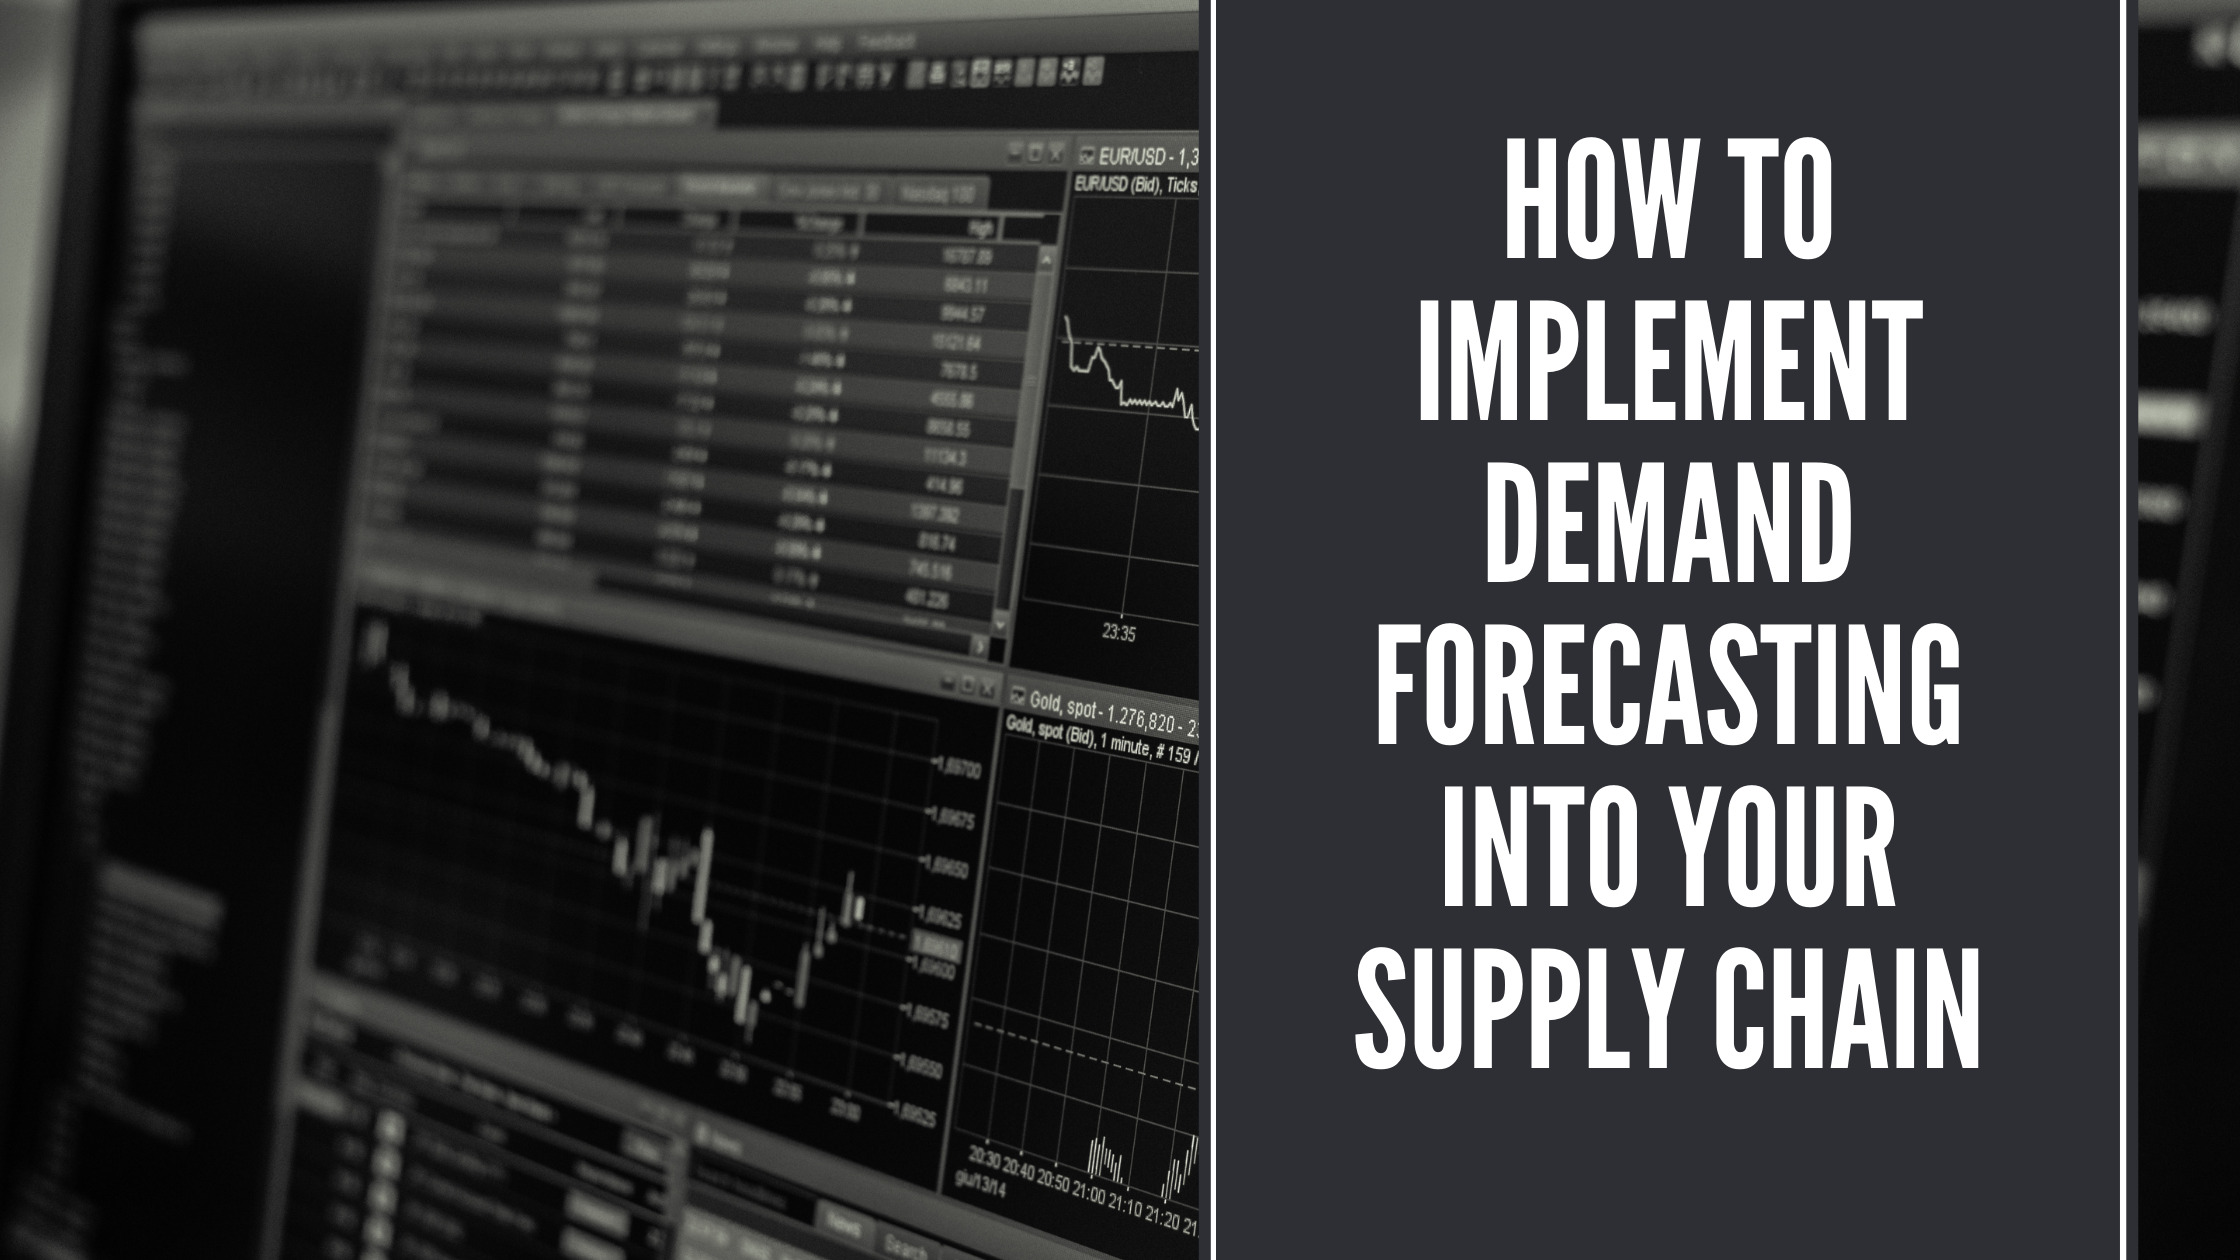 How to implement demand forecasting into your supply chain